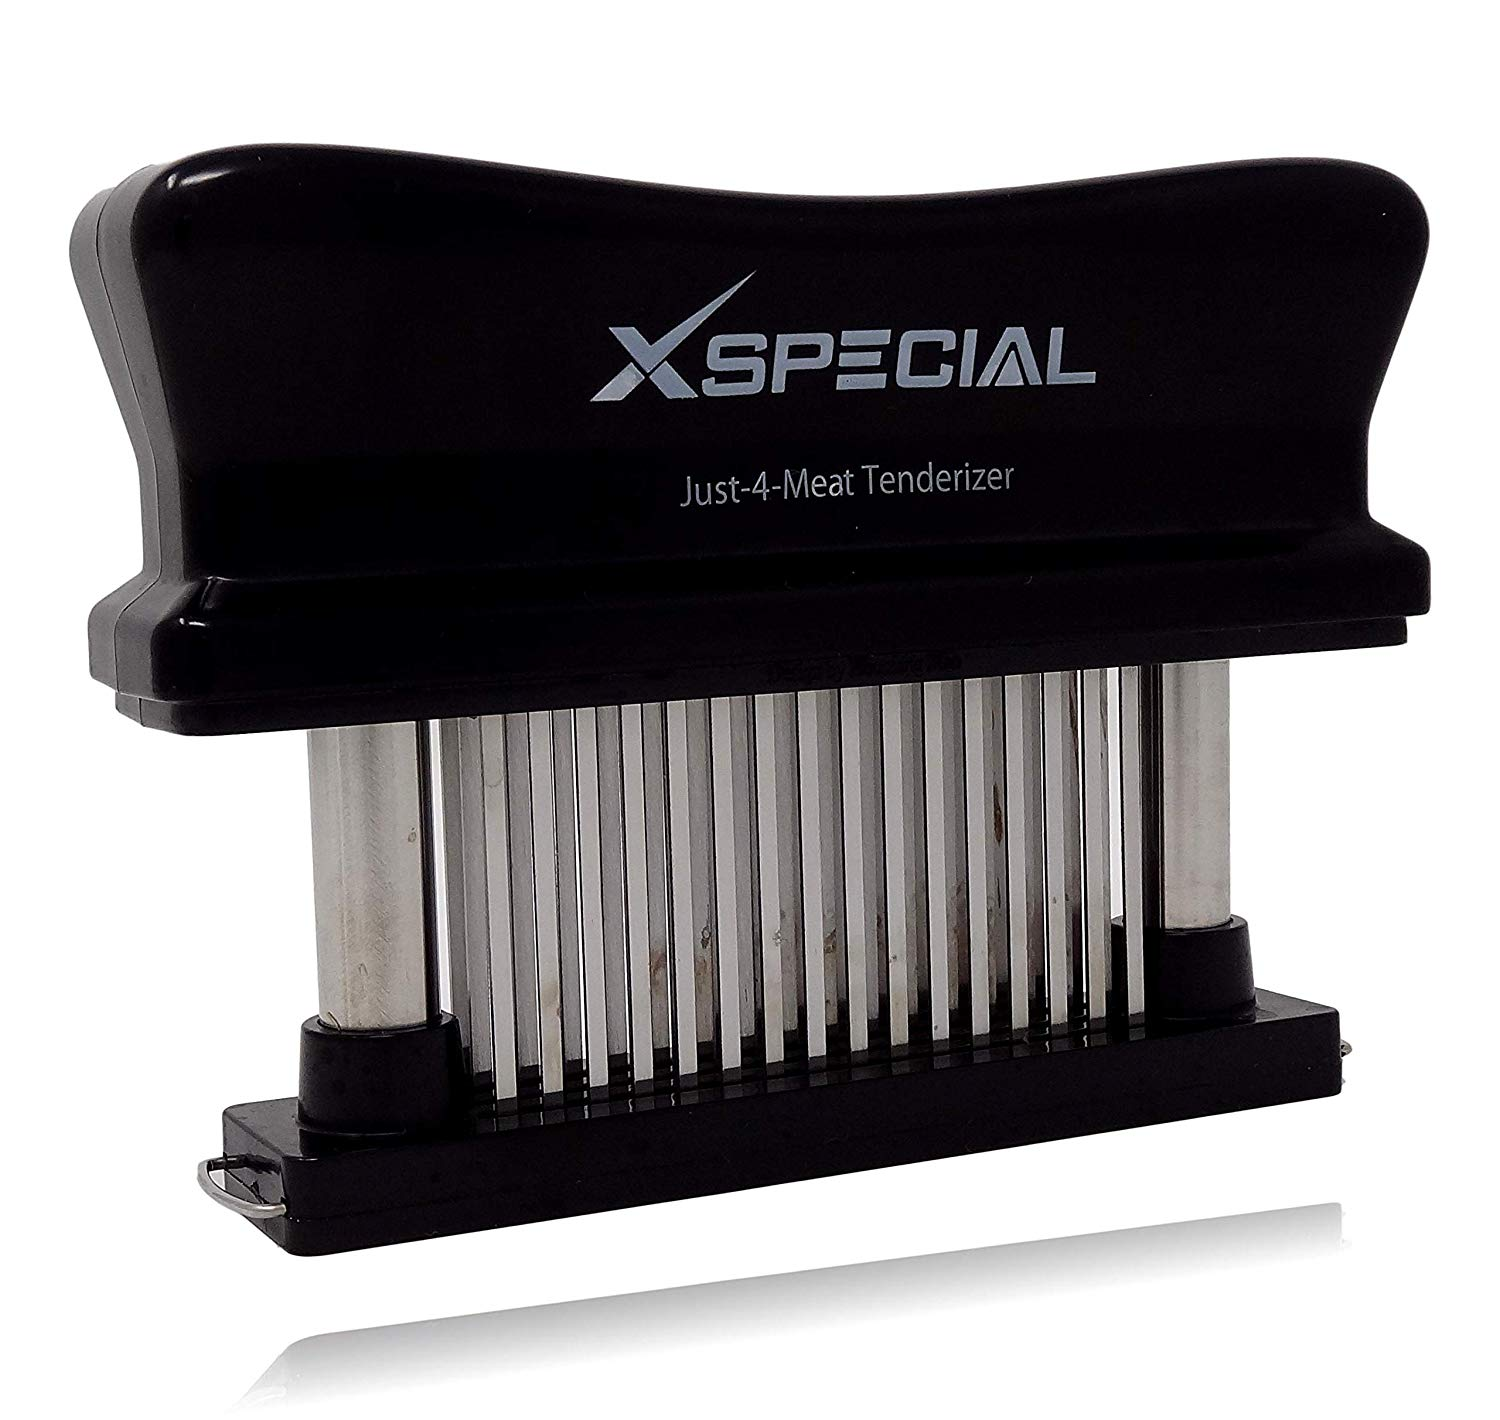 Black 48-blade meat tenderizer tool with stainless steel needle